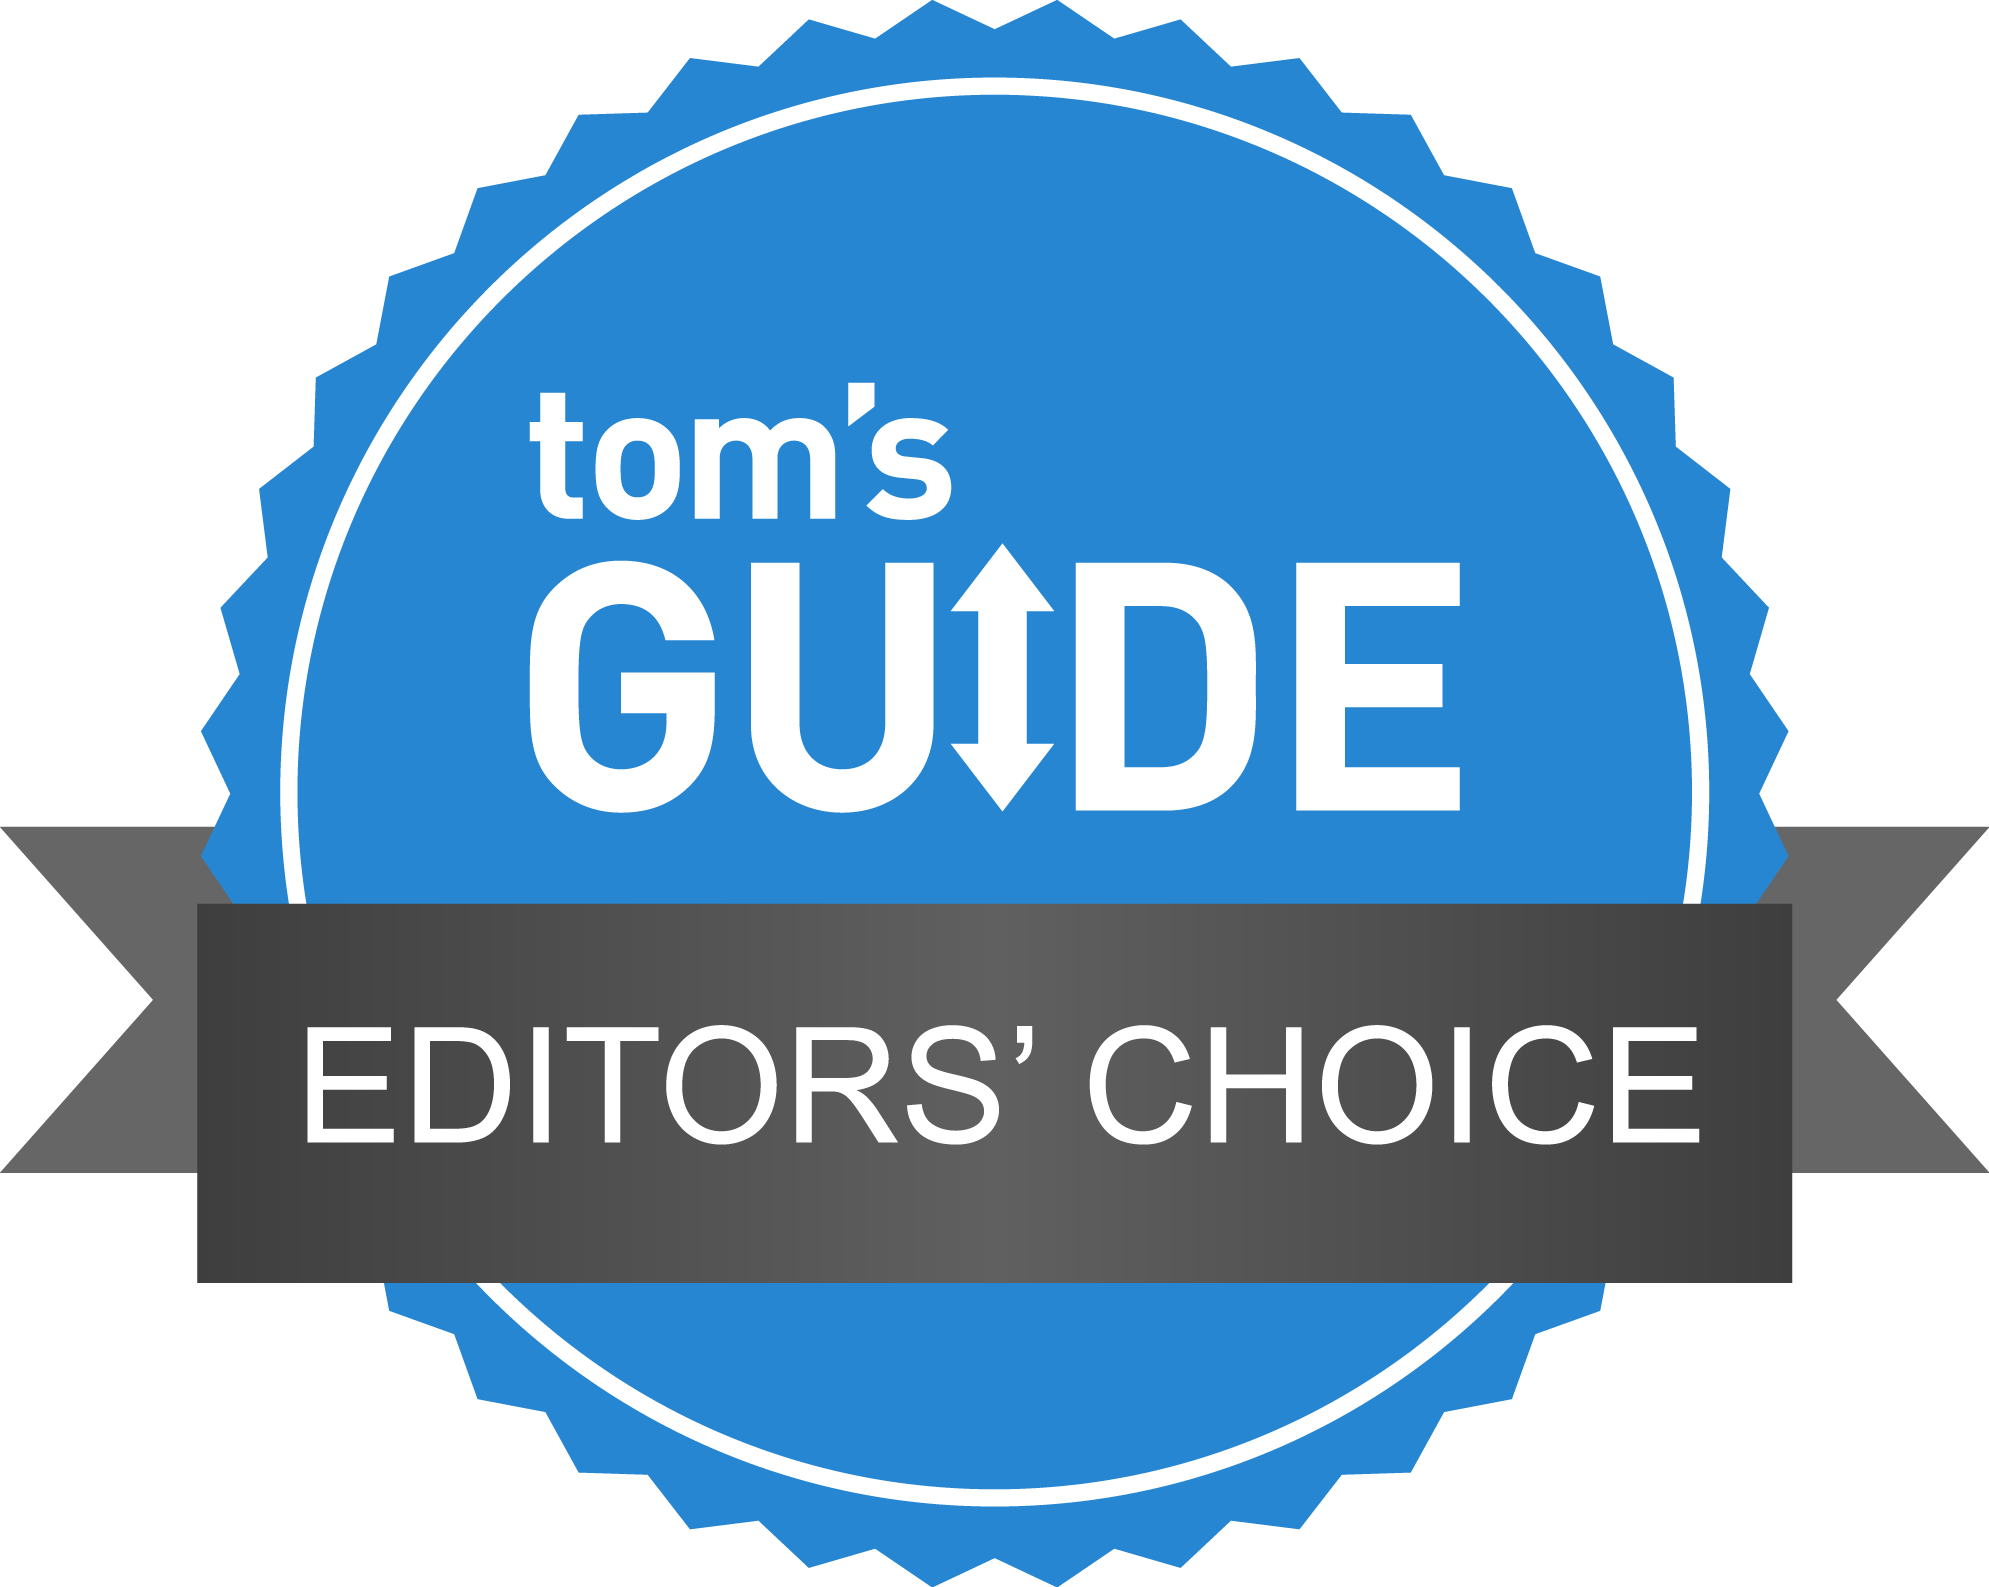 Internet Security 2017 - Tom's Guide Editor's Choice